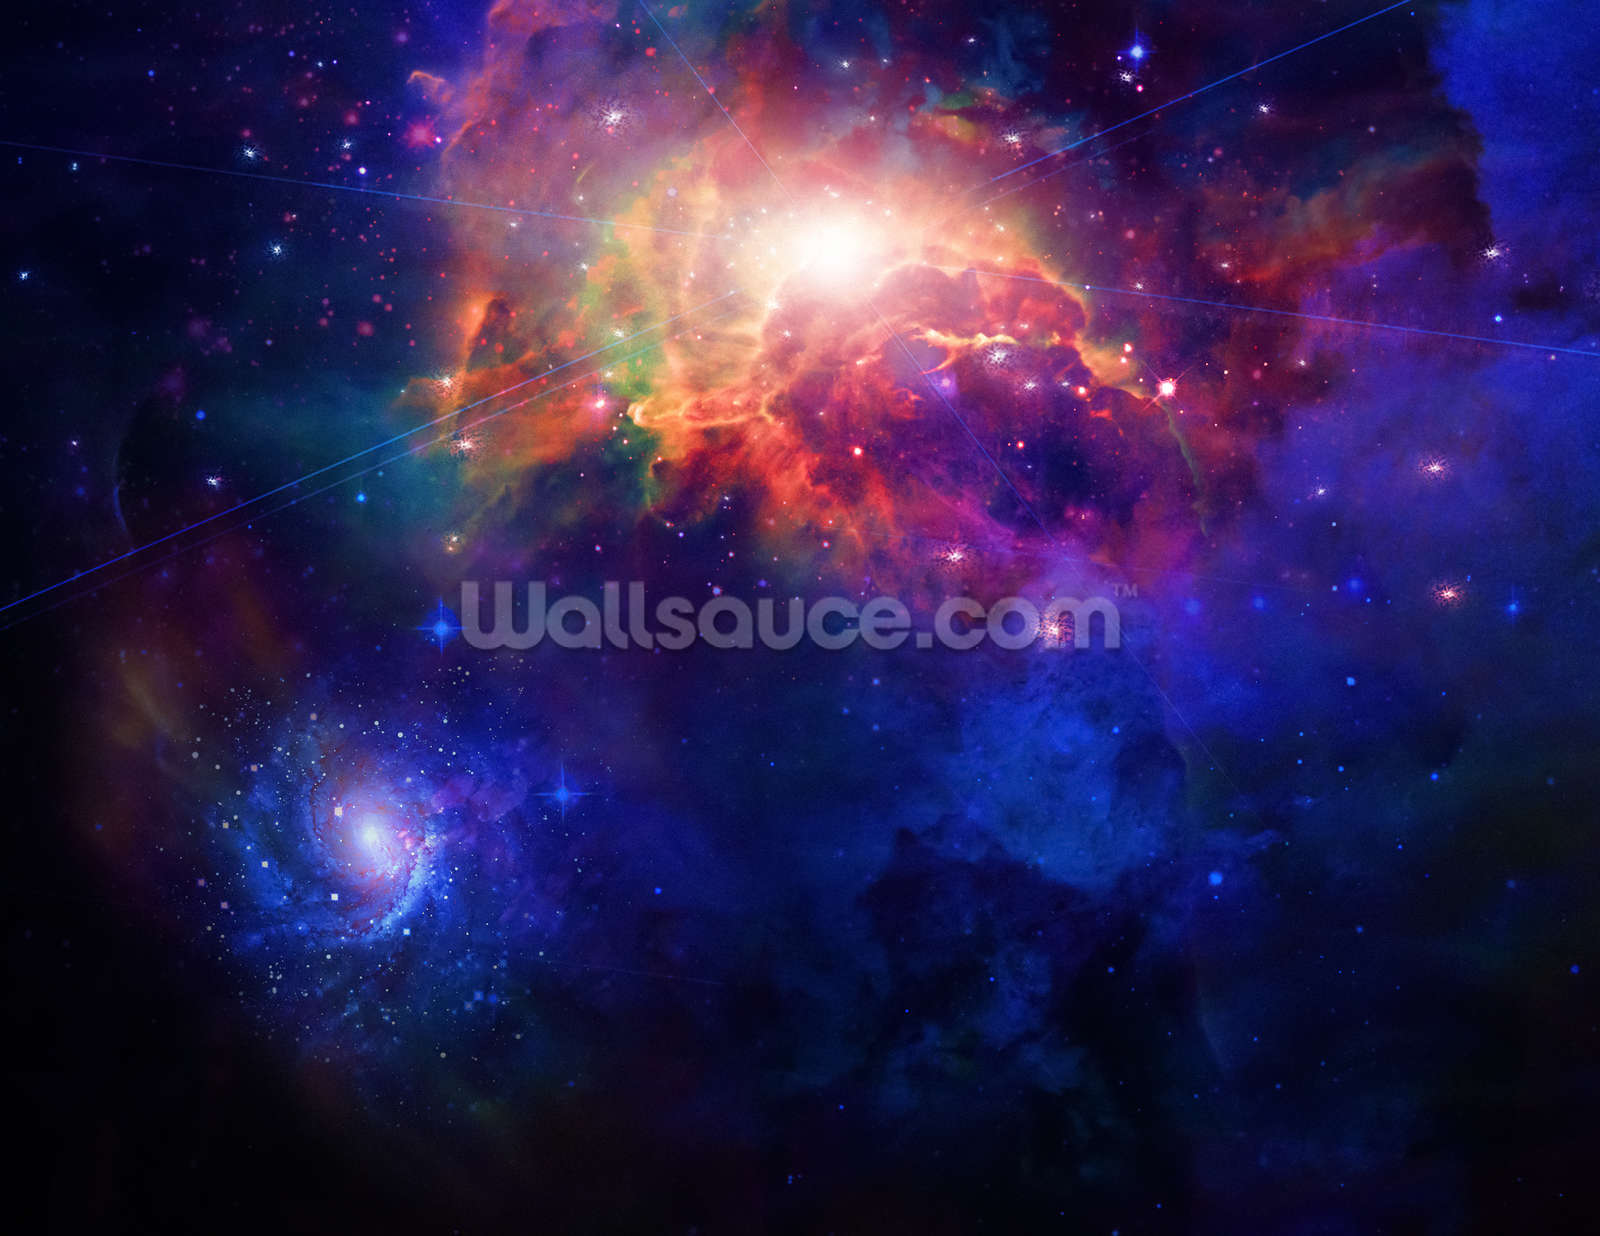 Space wallpaper wall mural wallsauce usa for Universe wallpaper for walls